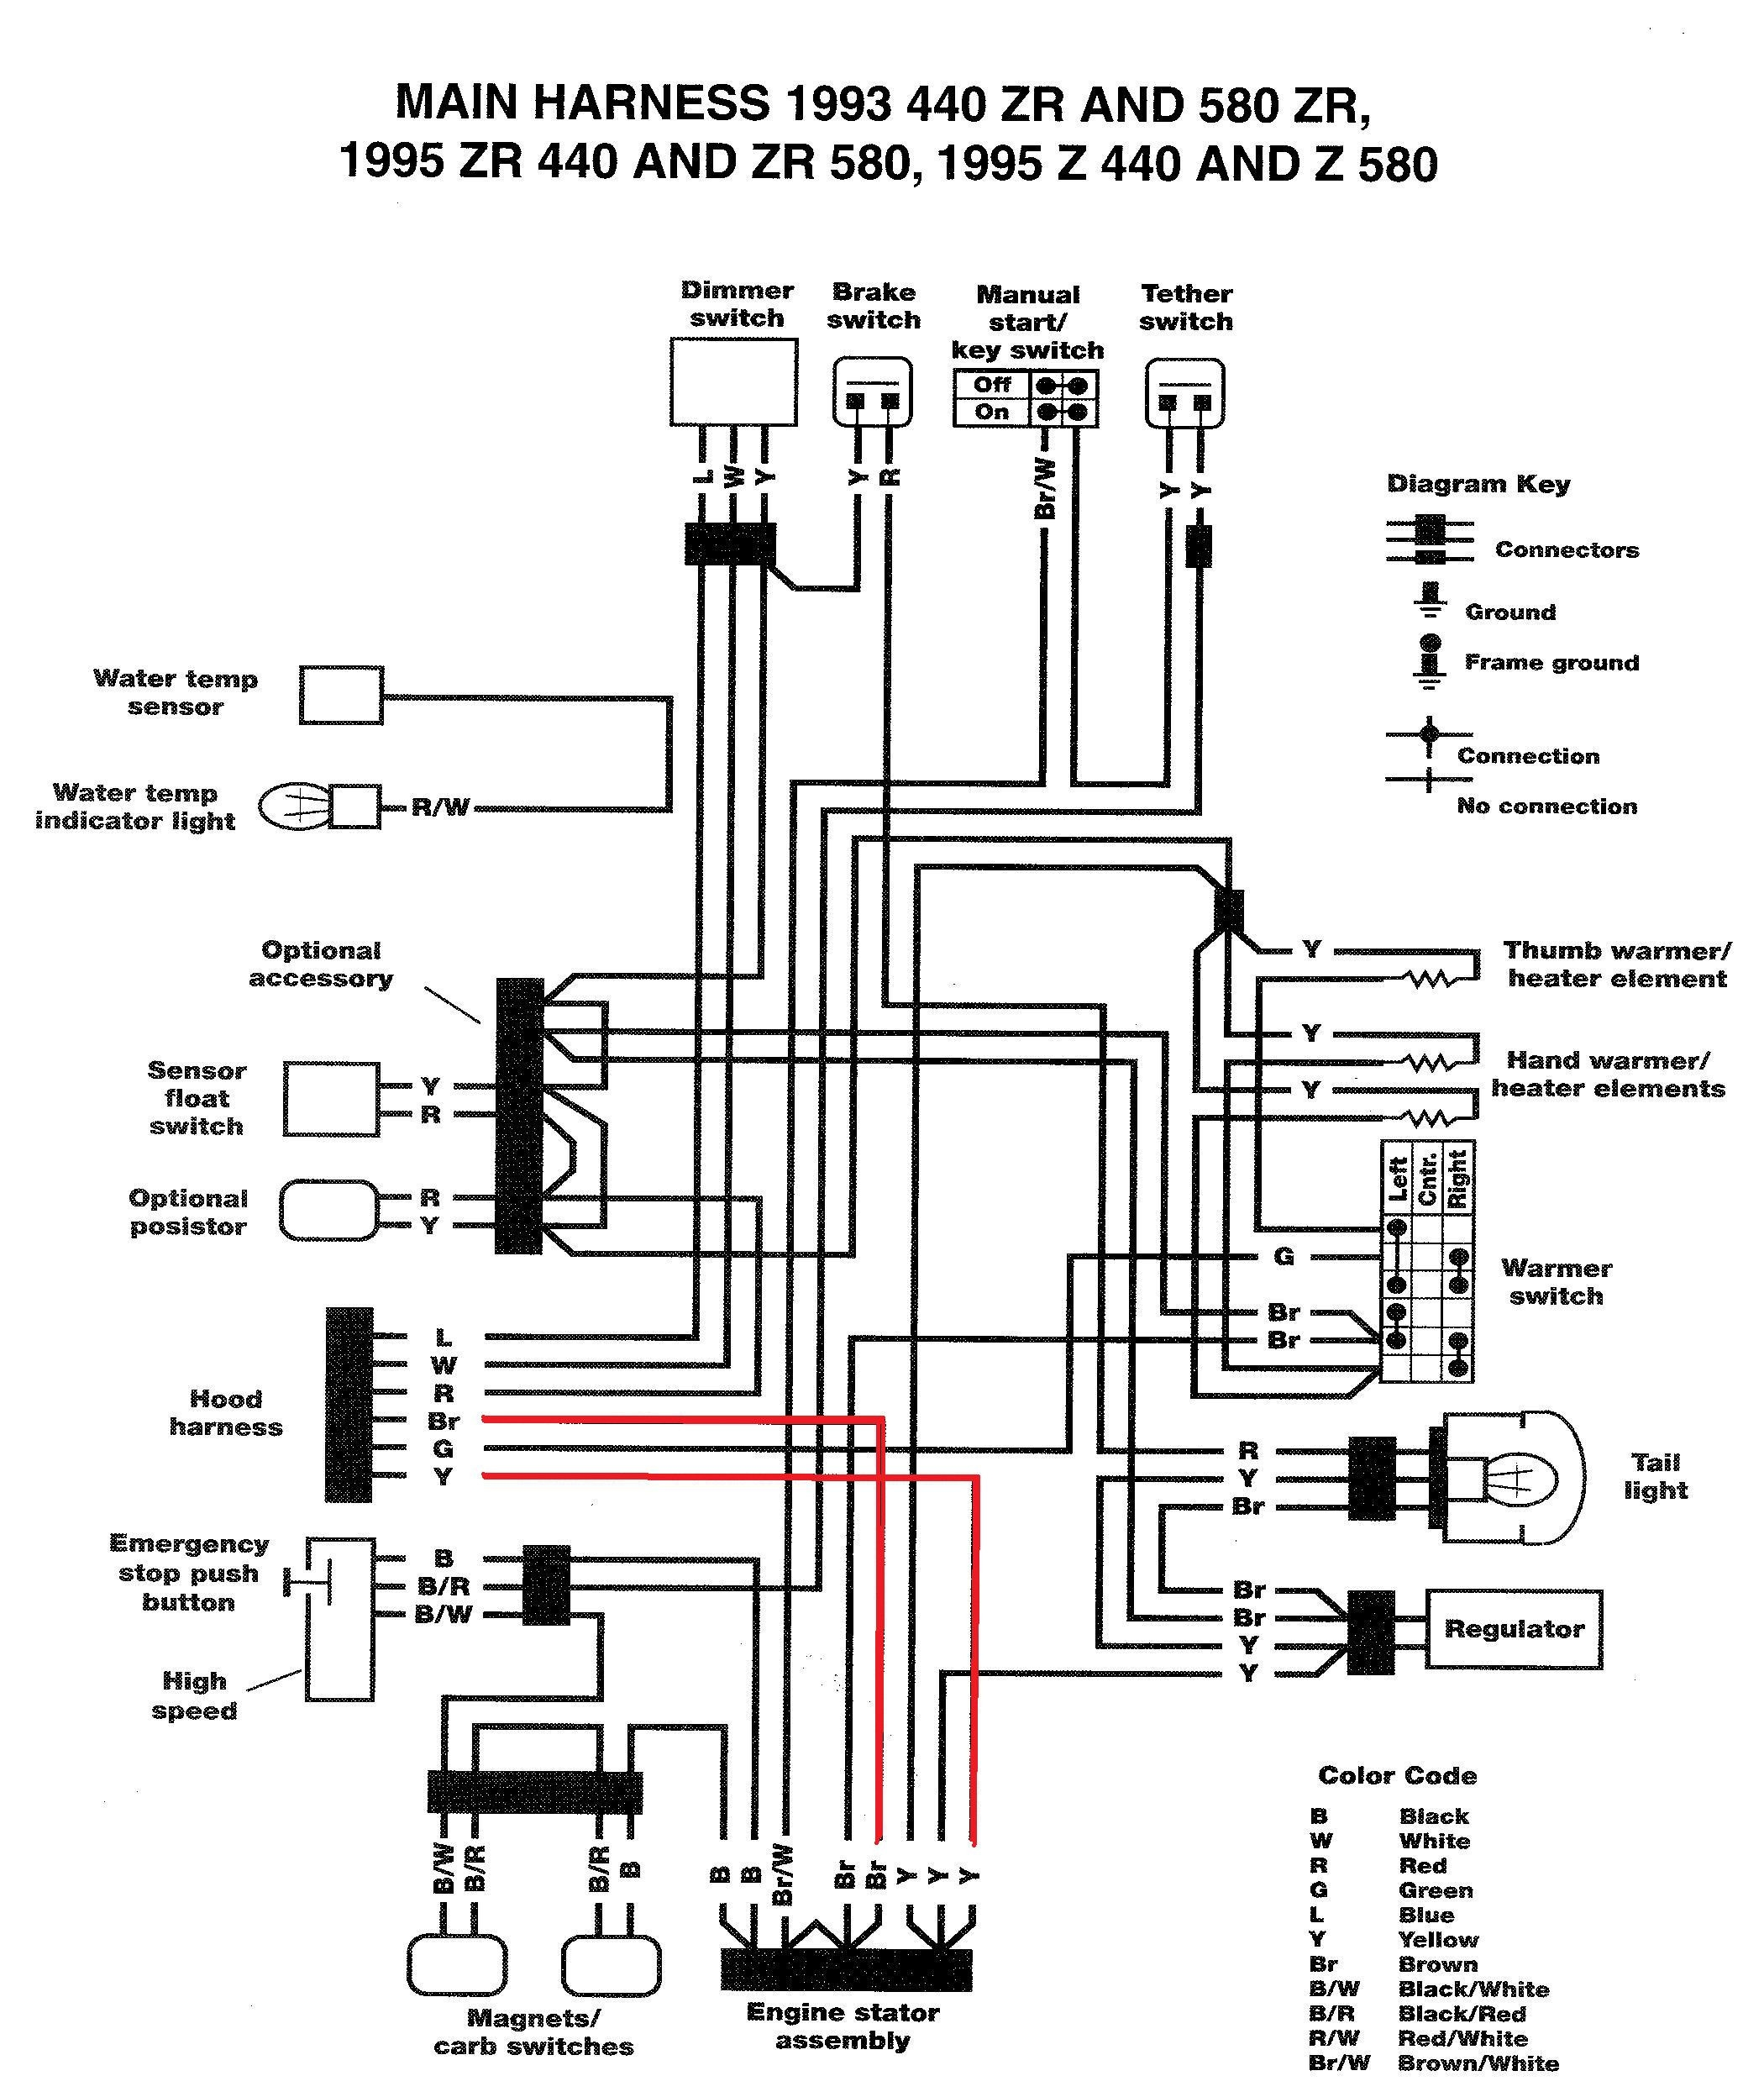 diagram] motorcycle wiring diagrams yamaha full version hd quality diagrams  yamaha - mg50dfxschematic4215.contrabbassiverdiani.it  contrabbassi di simone e damiano verdiani